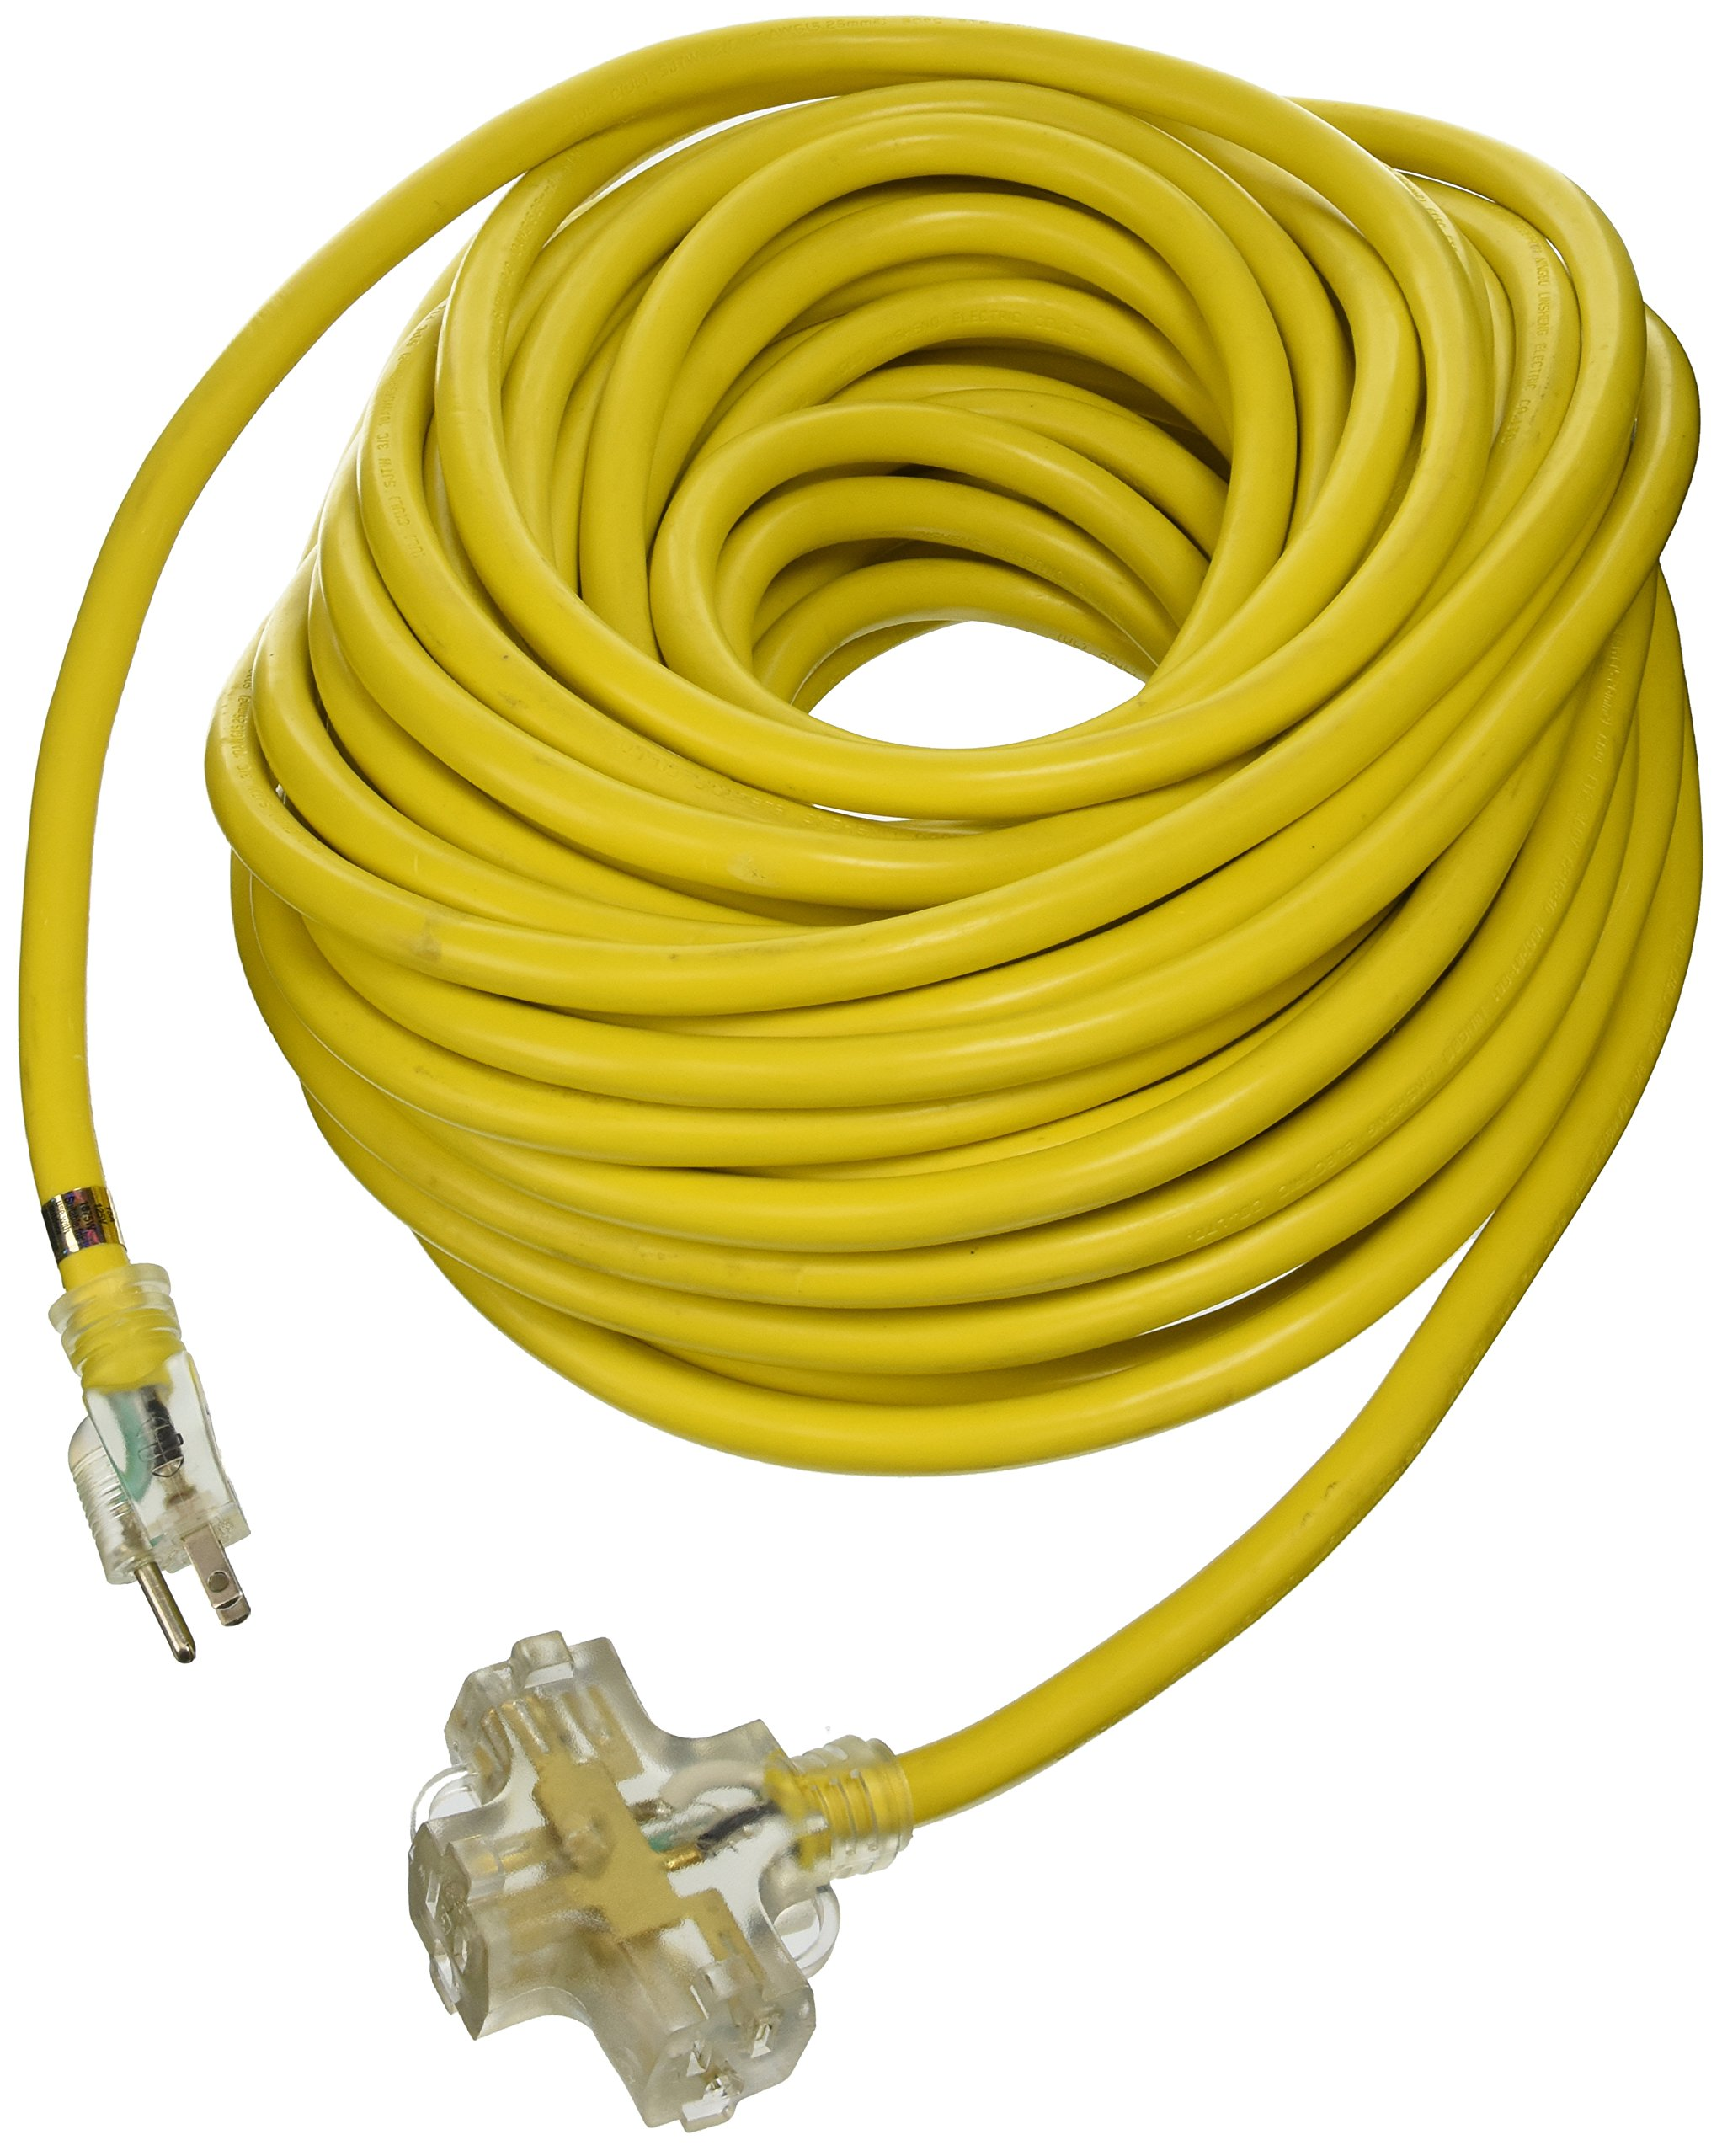 ATE Pro. USA 70050 Extension Cord, 100', 10 Gauge, 3-Prong by ATE Pro. USA